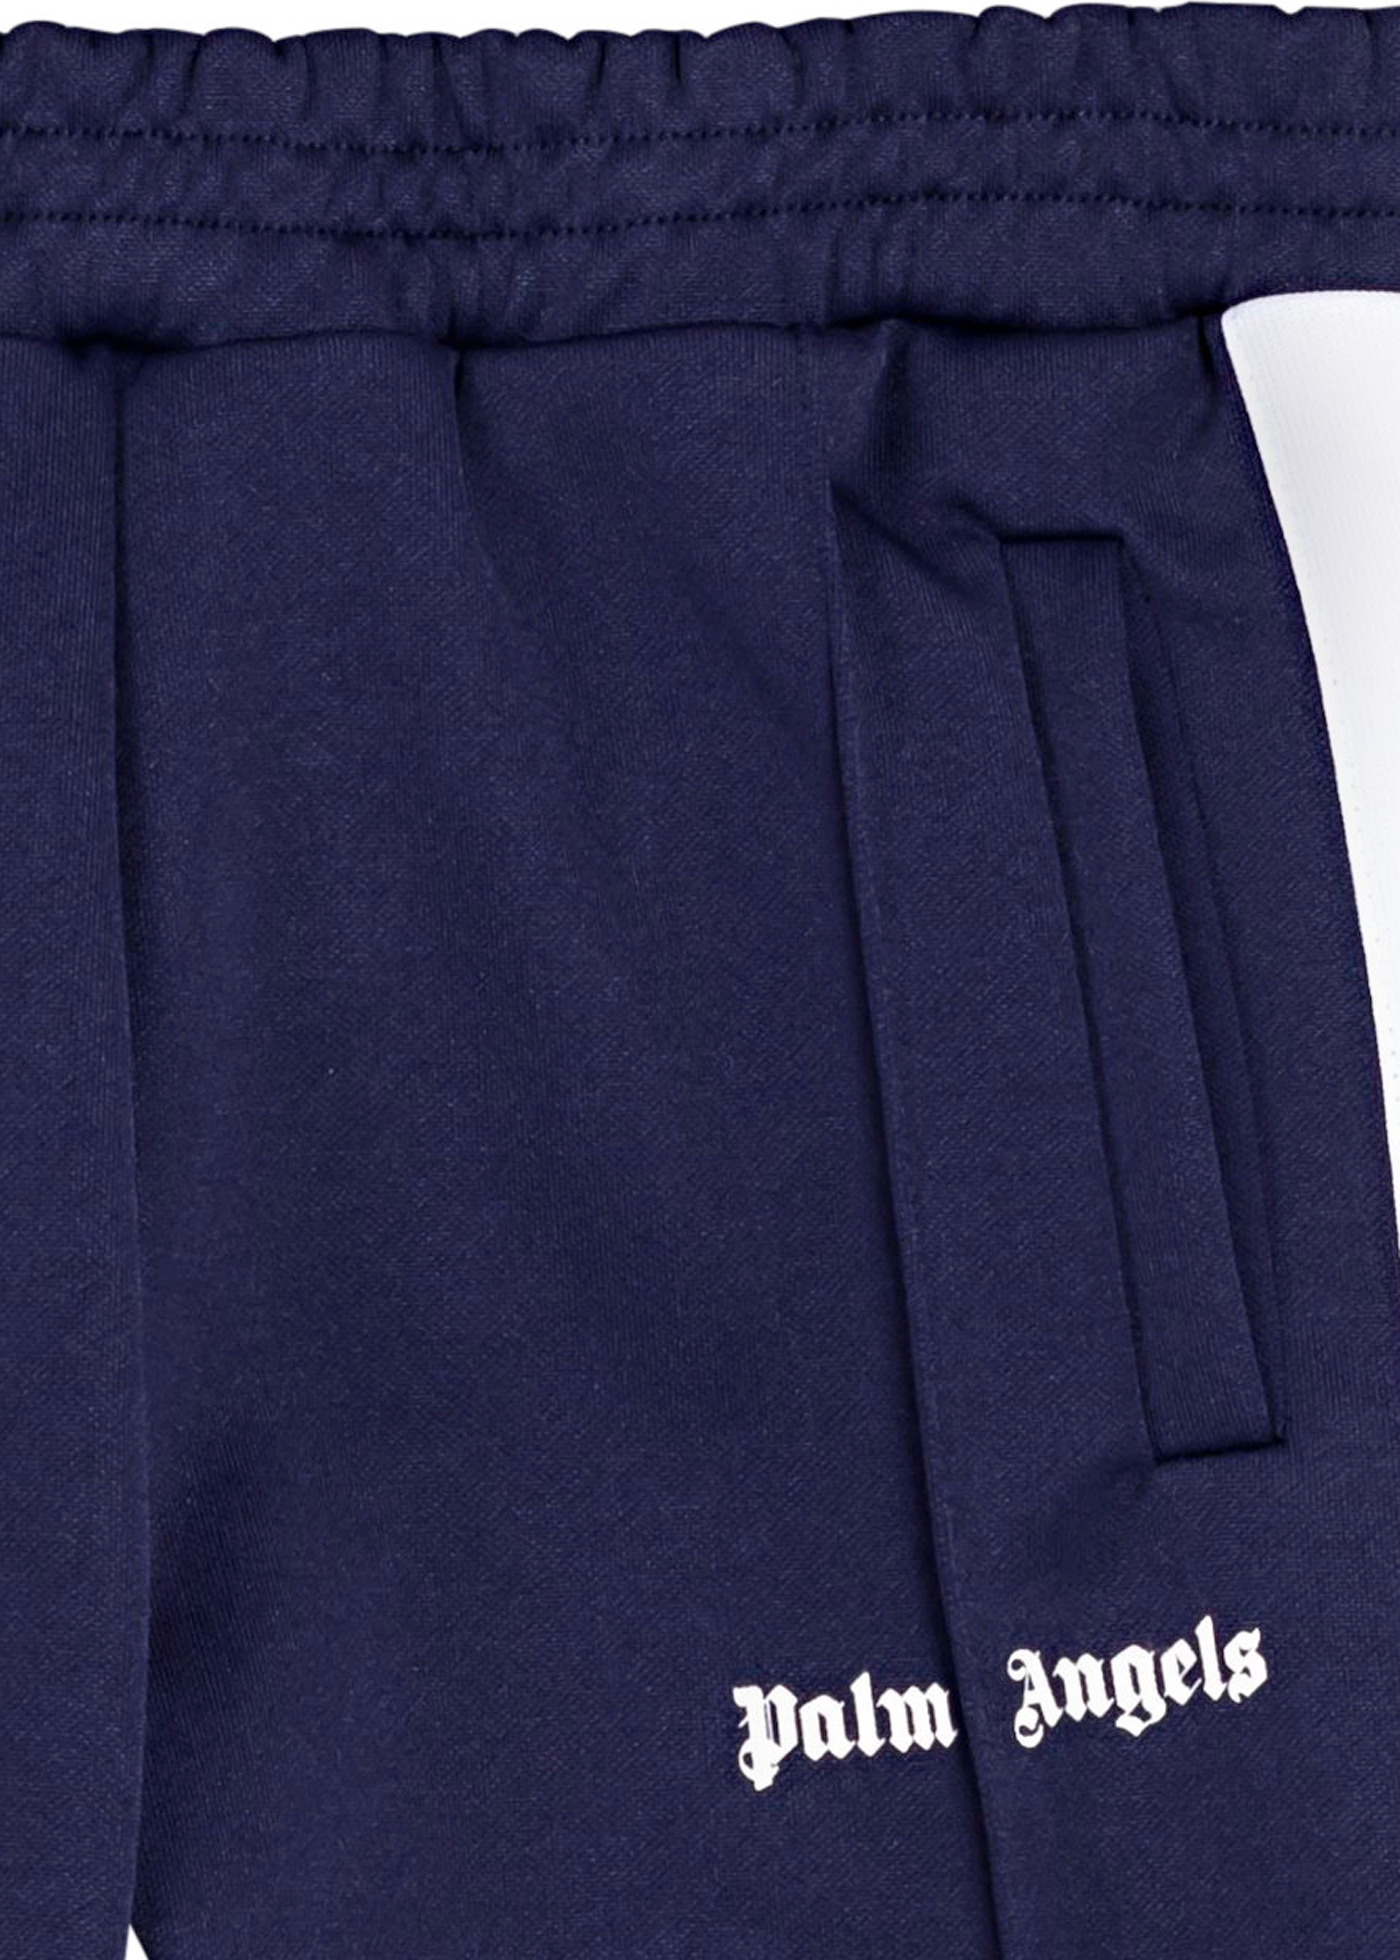 CLASSIC LOGO TRACK PANT image number 2